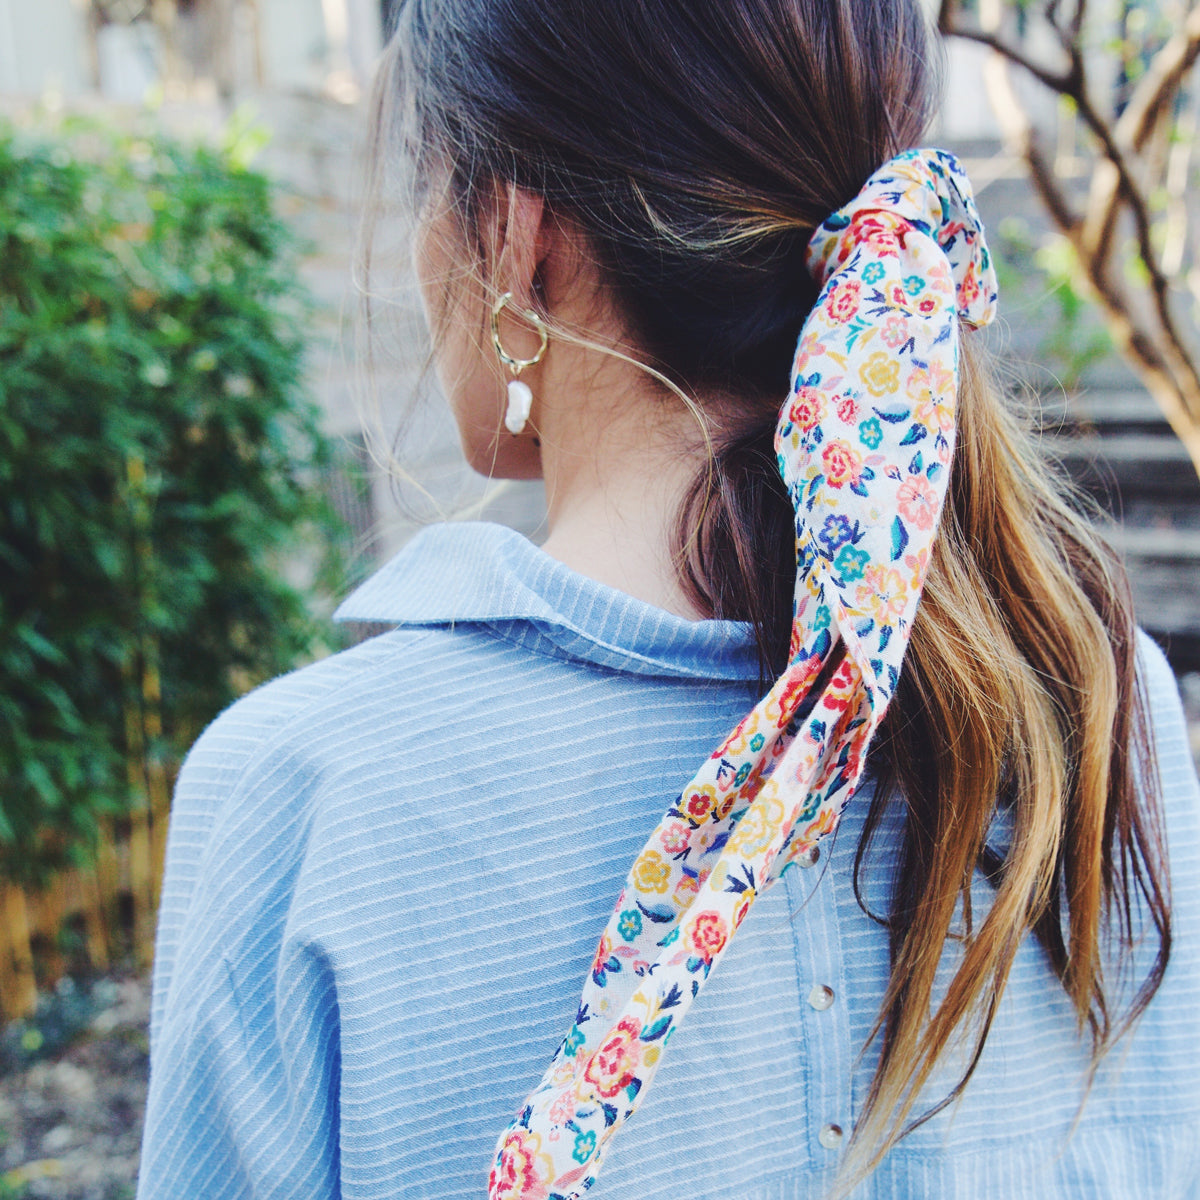 girl wearing blue and white striped shirt, pearl earrings, and a colorful printed hair scarf.